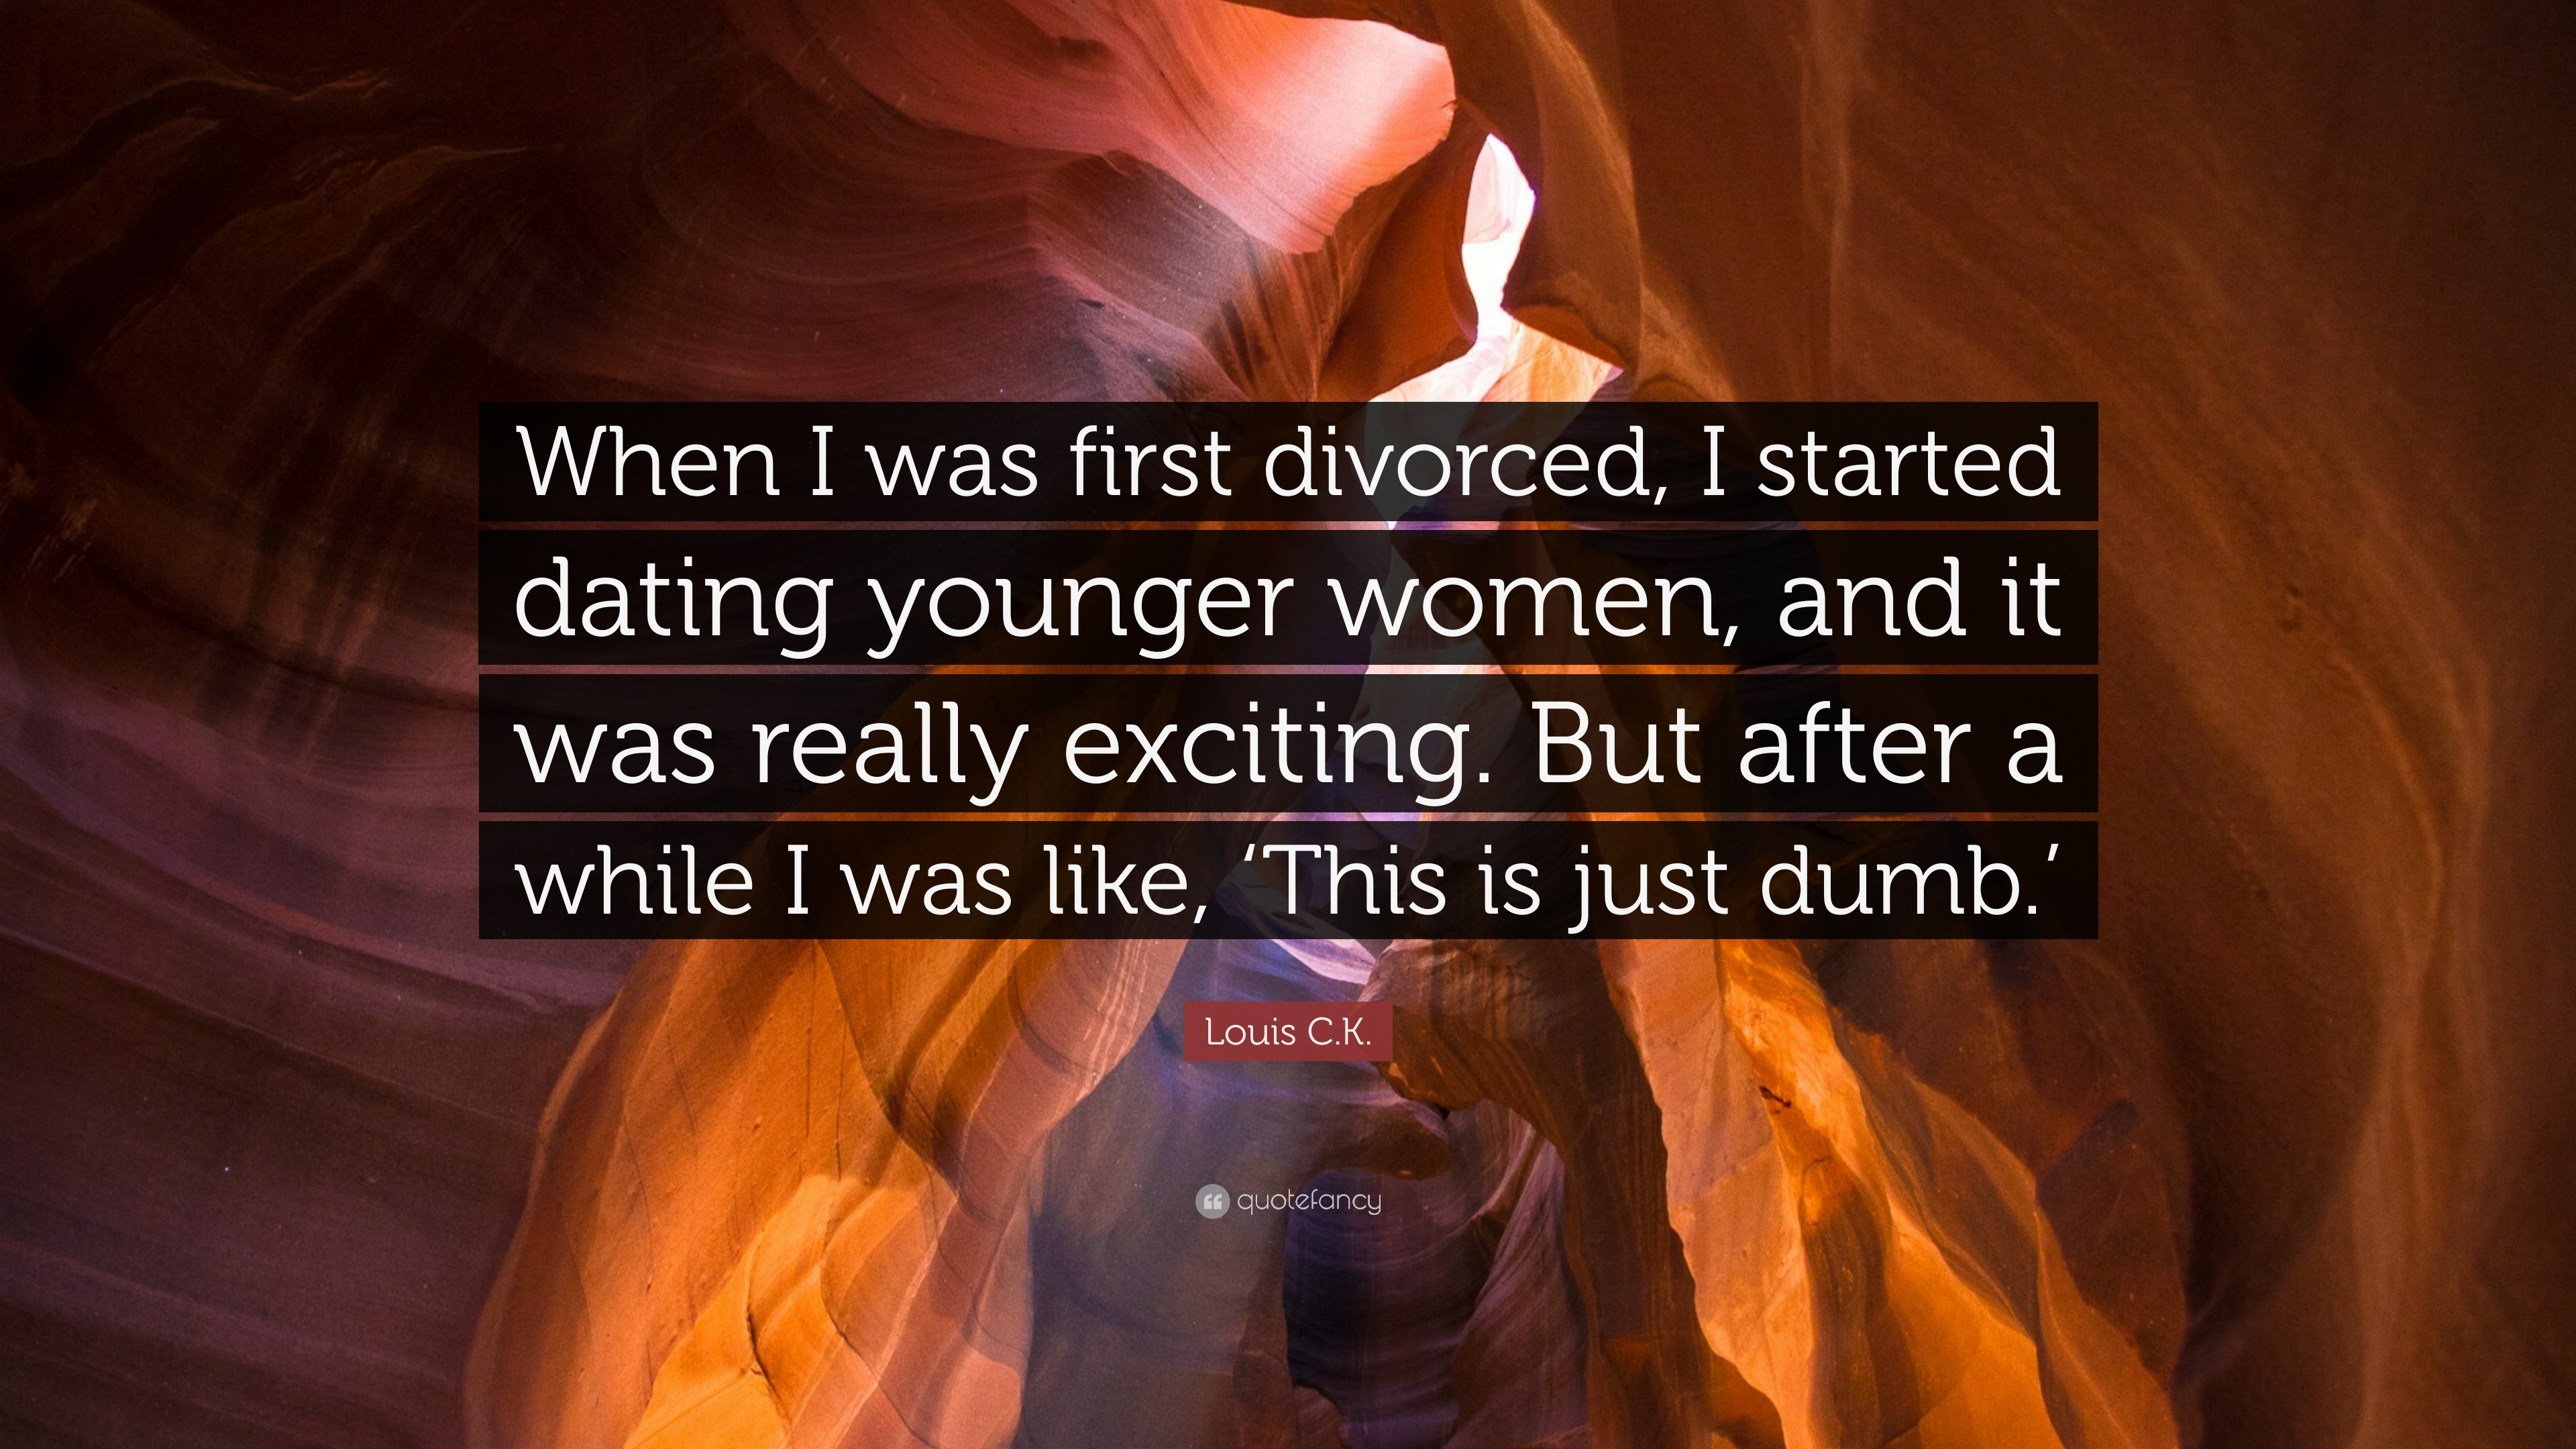 dating a younger woman after divorce